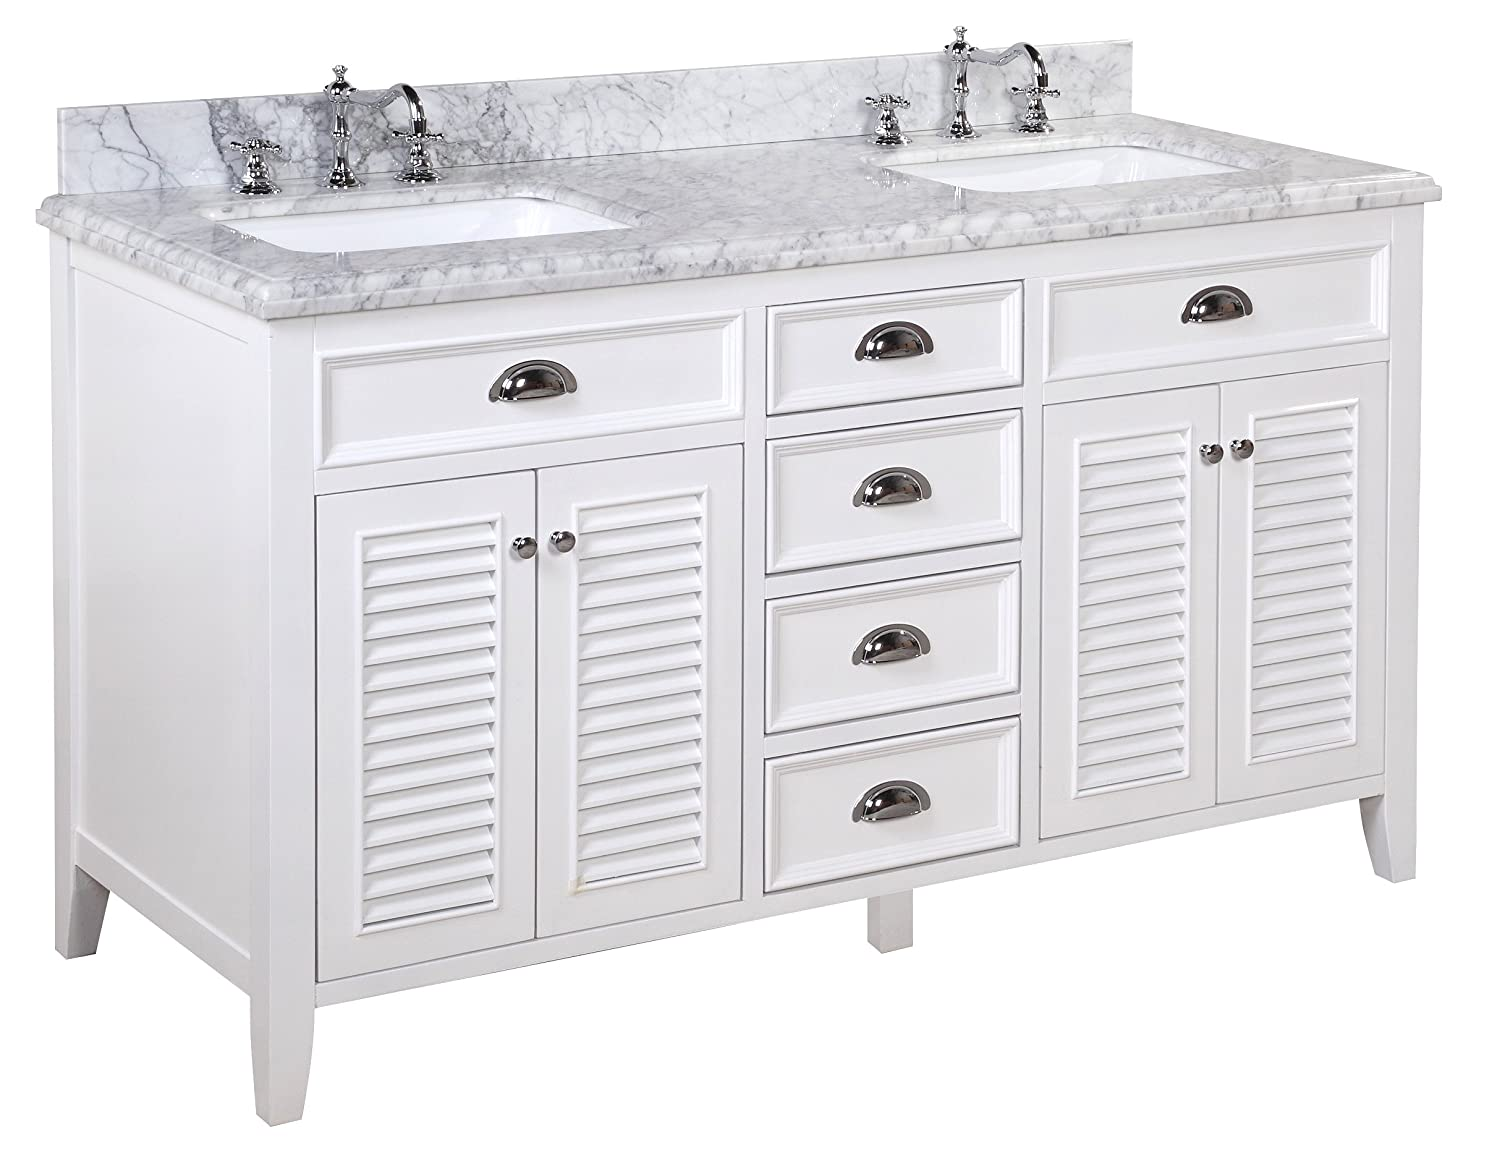 White double bathroom vanity - Kitchen Bath Collection Kbc Sh602wtcarr D Savannah Double Sink Bathroom Vanity With Marble Countertop Cabinet With Soft Close Function And Undermount